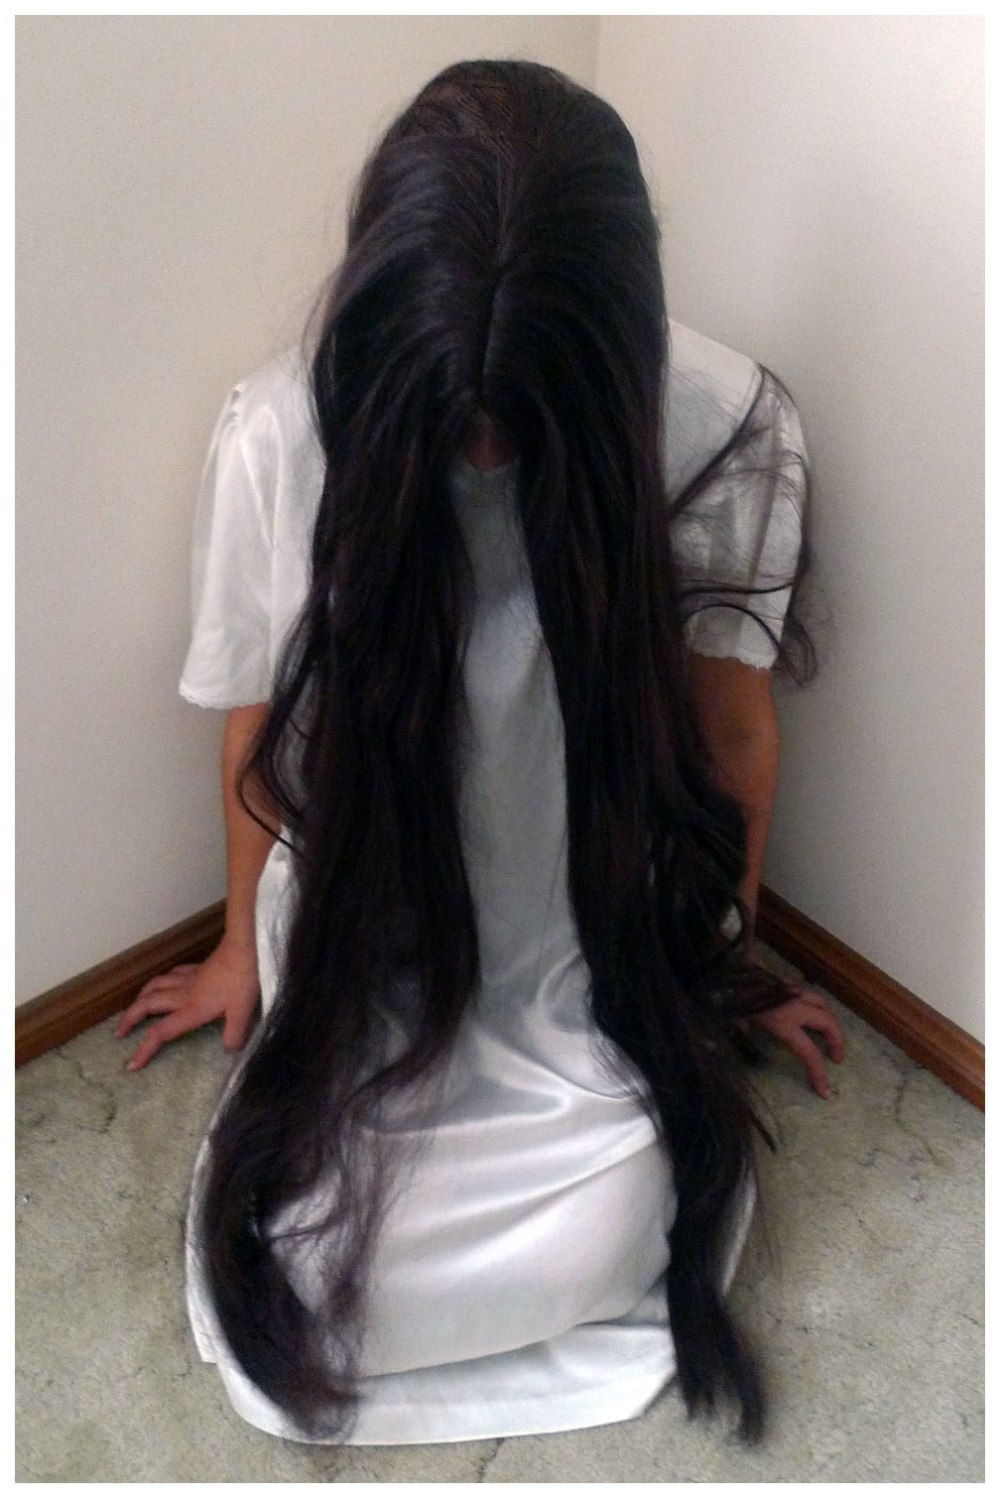 The Ring girl costume